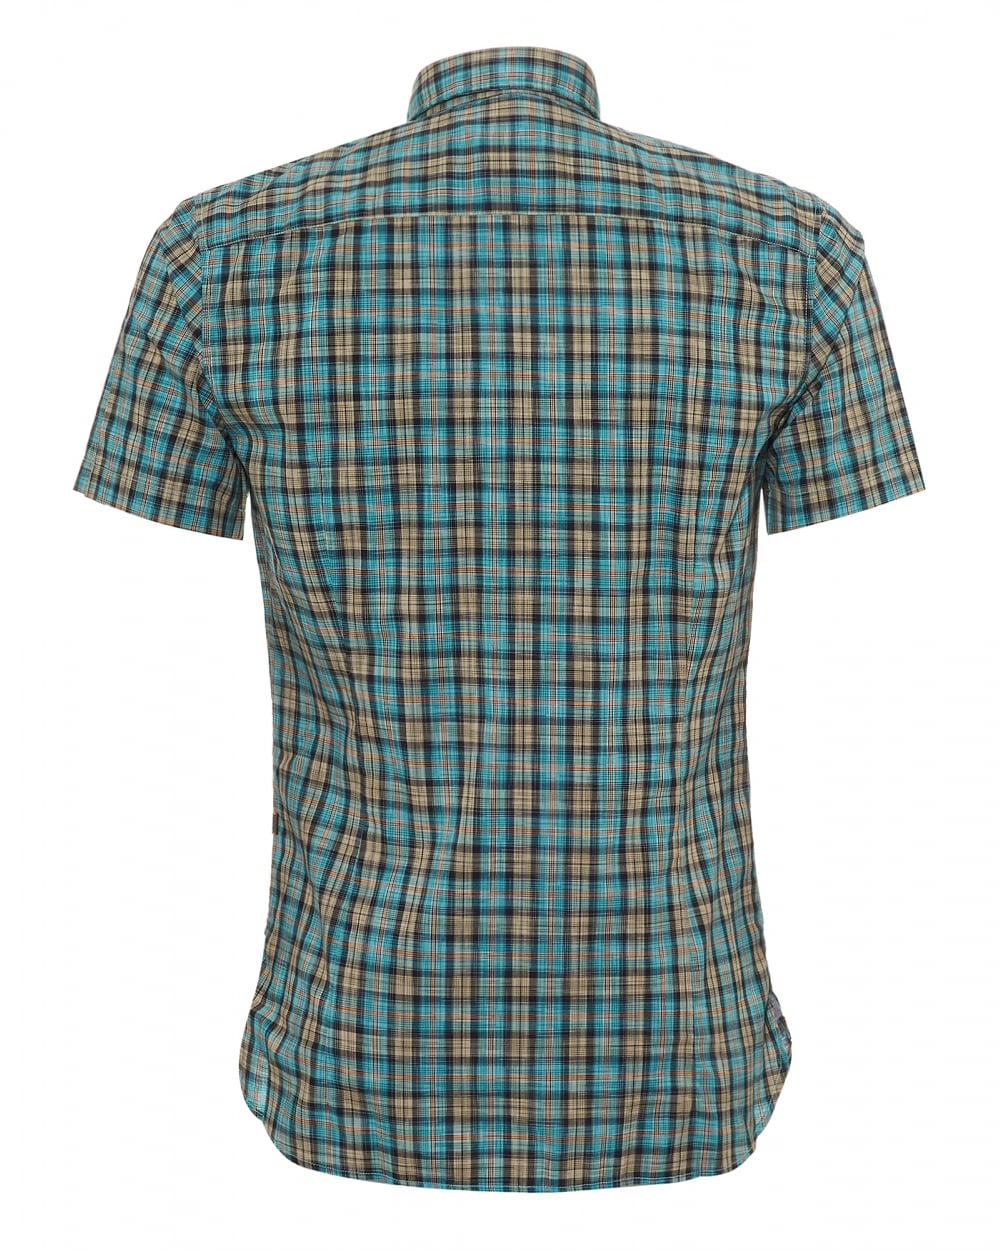 Hugo Boss Cattitude Short Sleeve Shirt - Ignition For Men